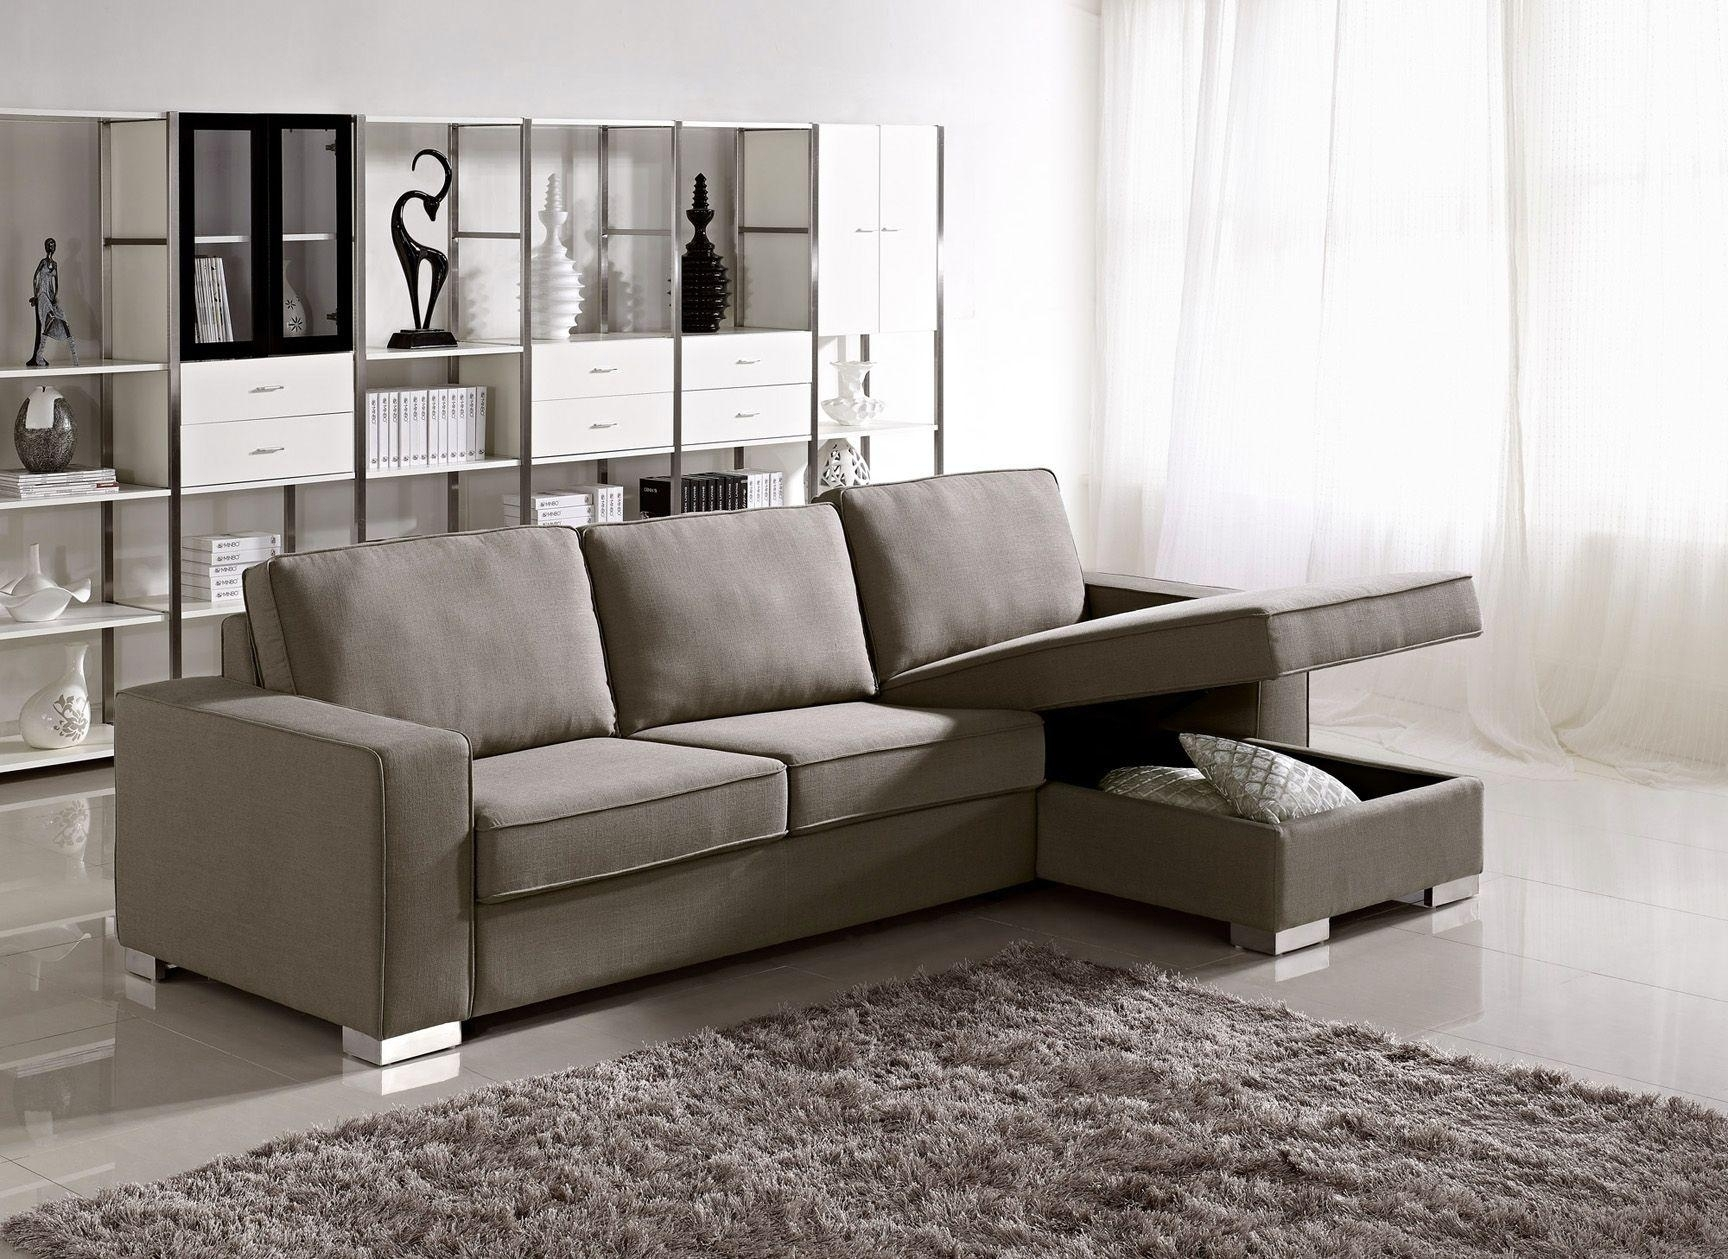 15+ Choices Of Apartment Sectional Sofa With Chaise | Sofa Ideas pertaining to Apartment Sectional Sofas With Chaise (Image 1 of 10)